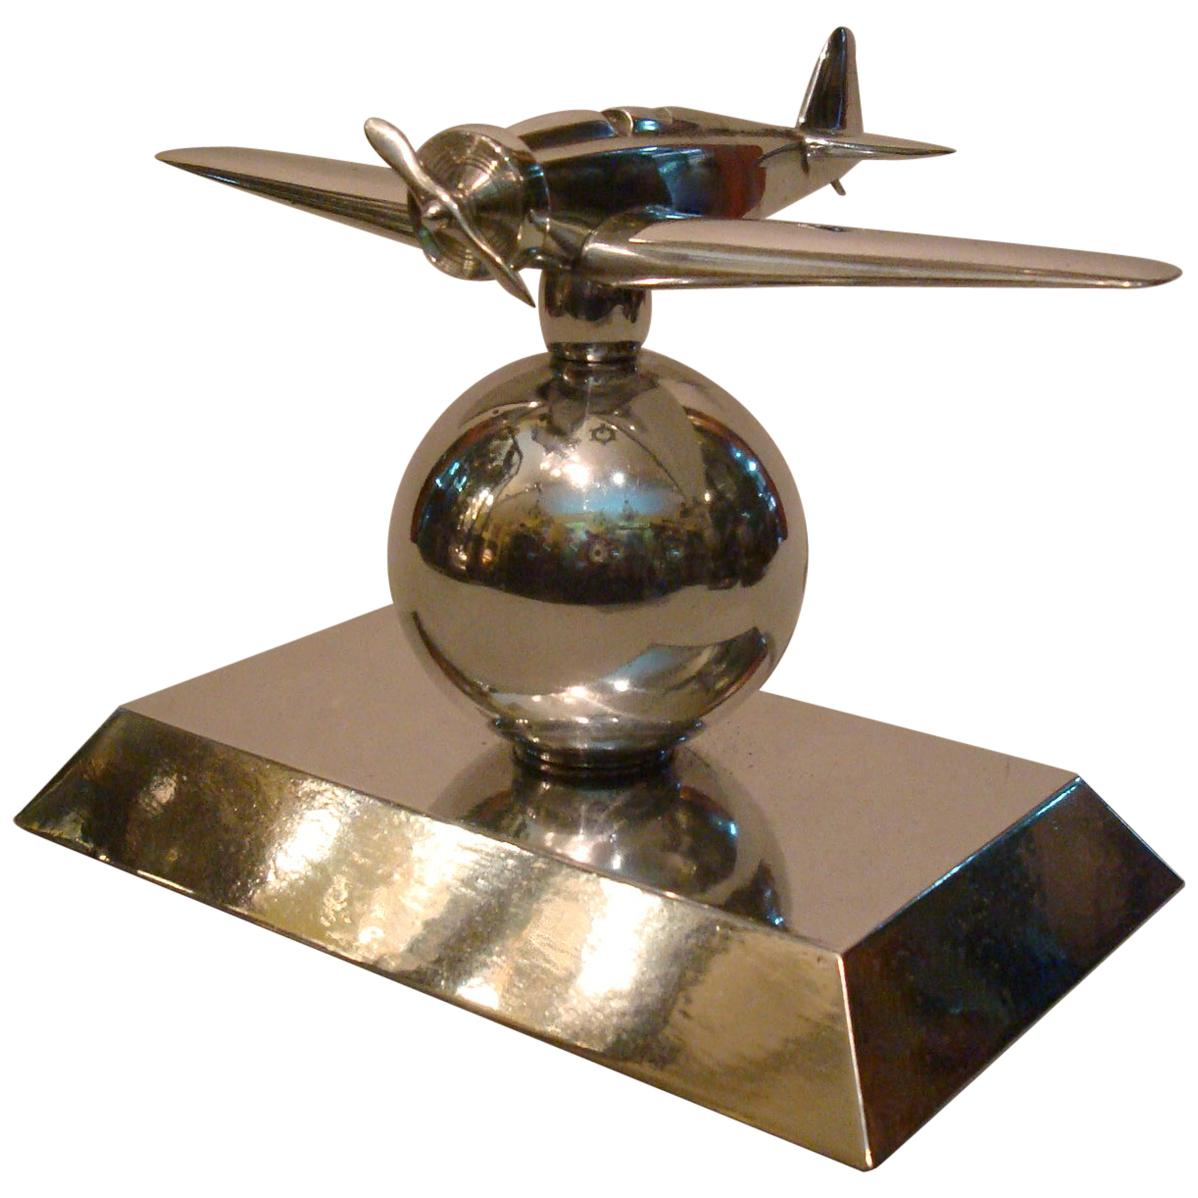 Art Deco Mid-20 Century Airplane Fighter over the World Paperweight, 1930s